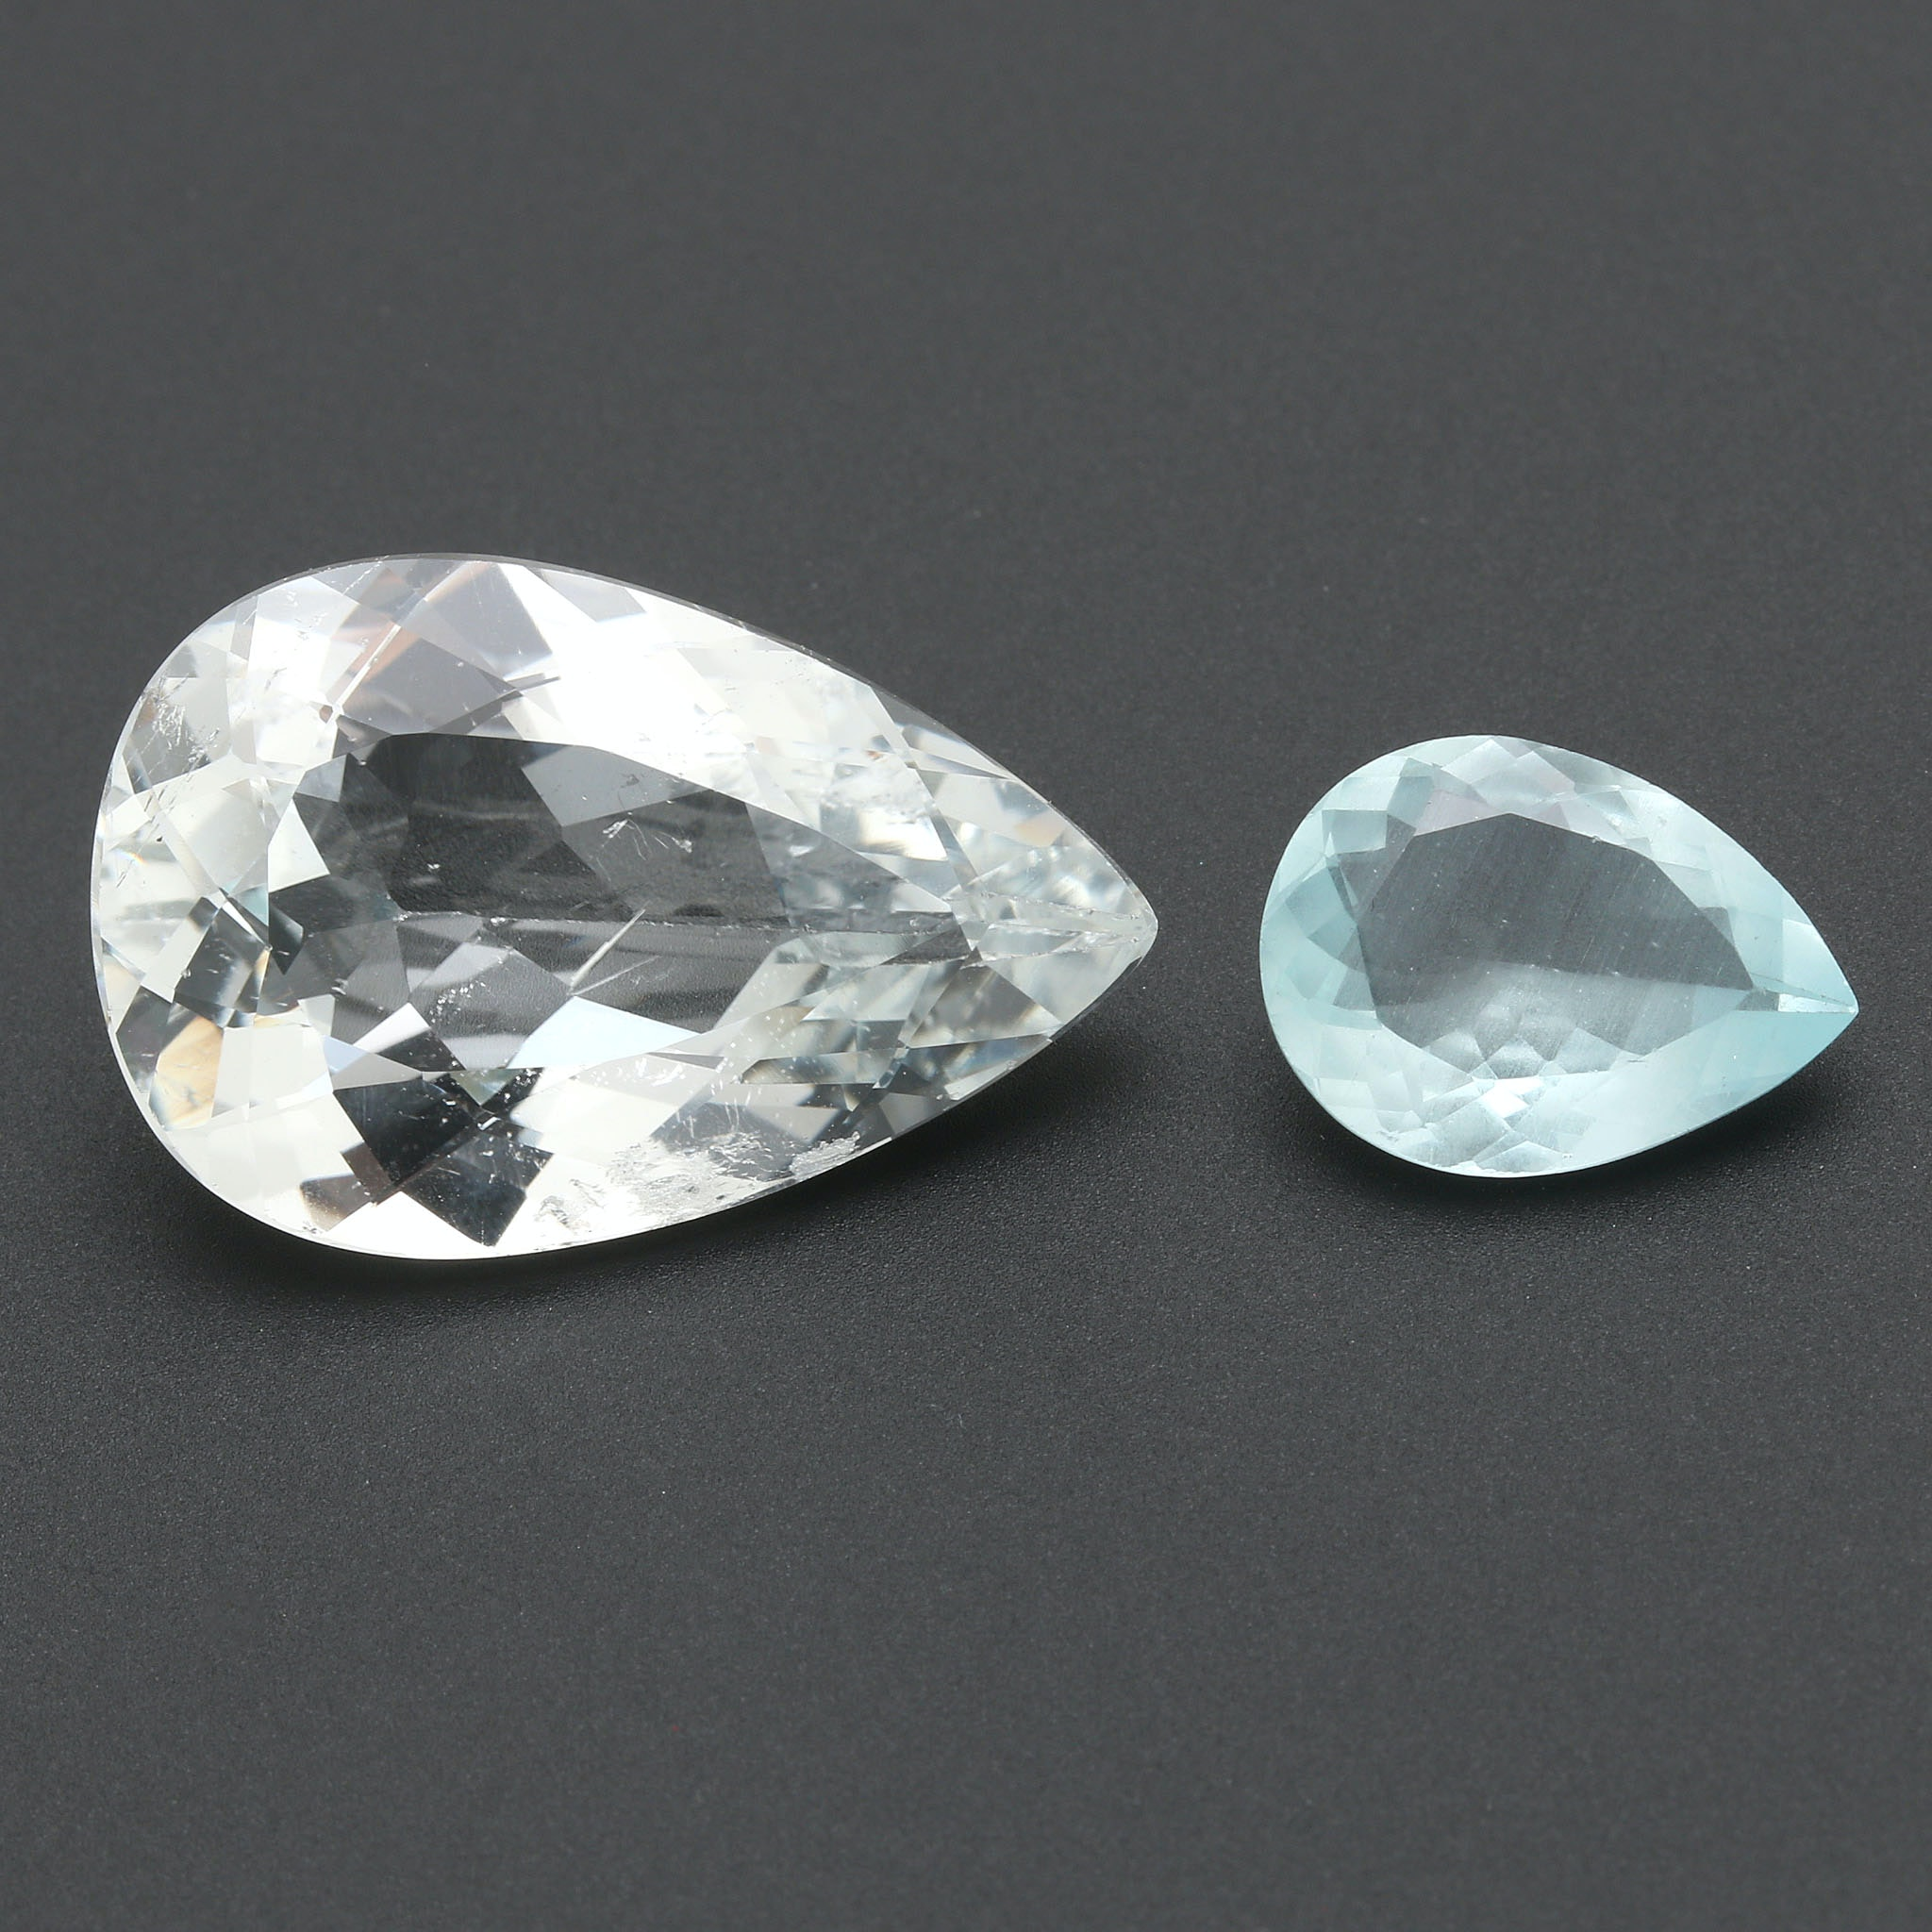 Loose 20.68 CTW Aquamarine Gemstones